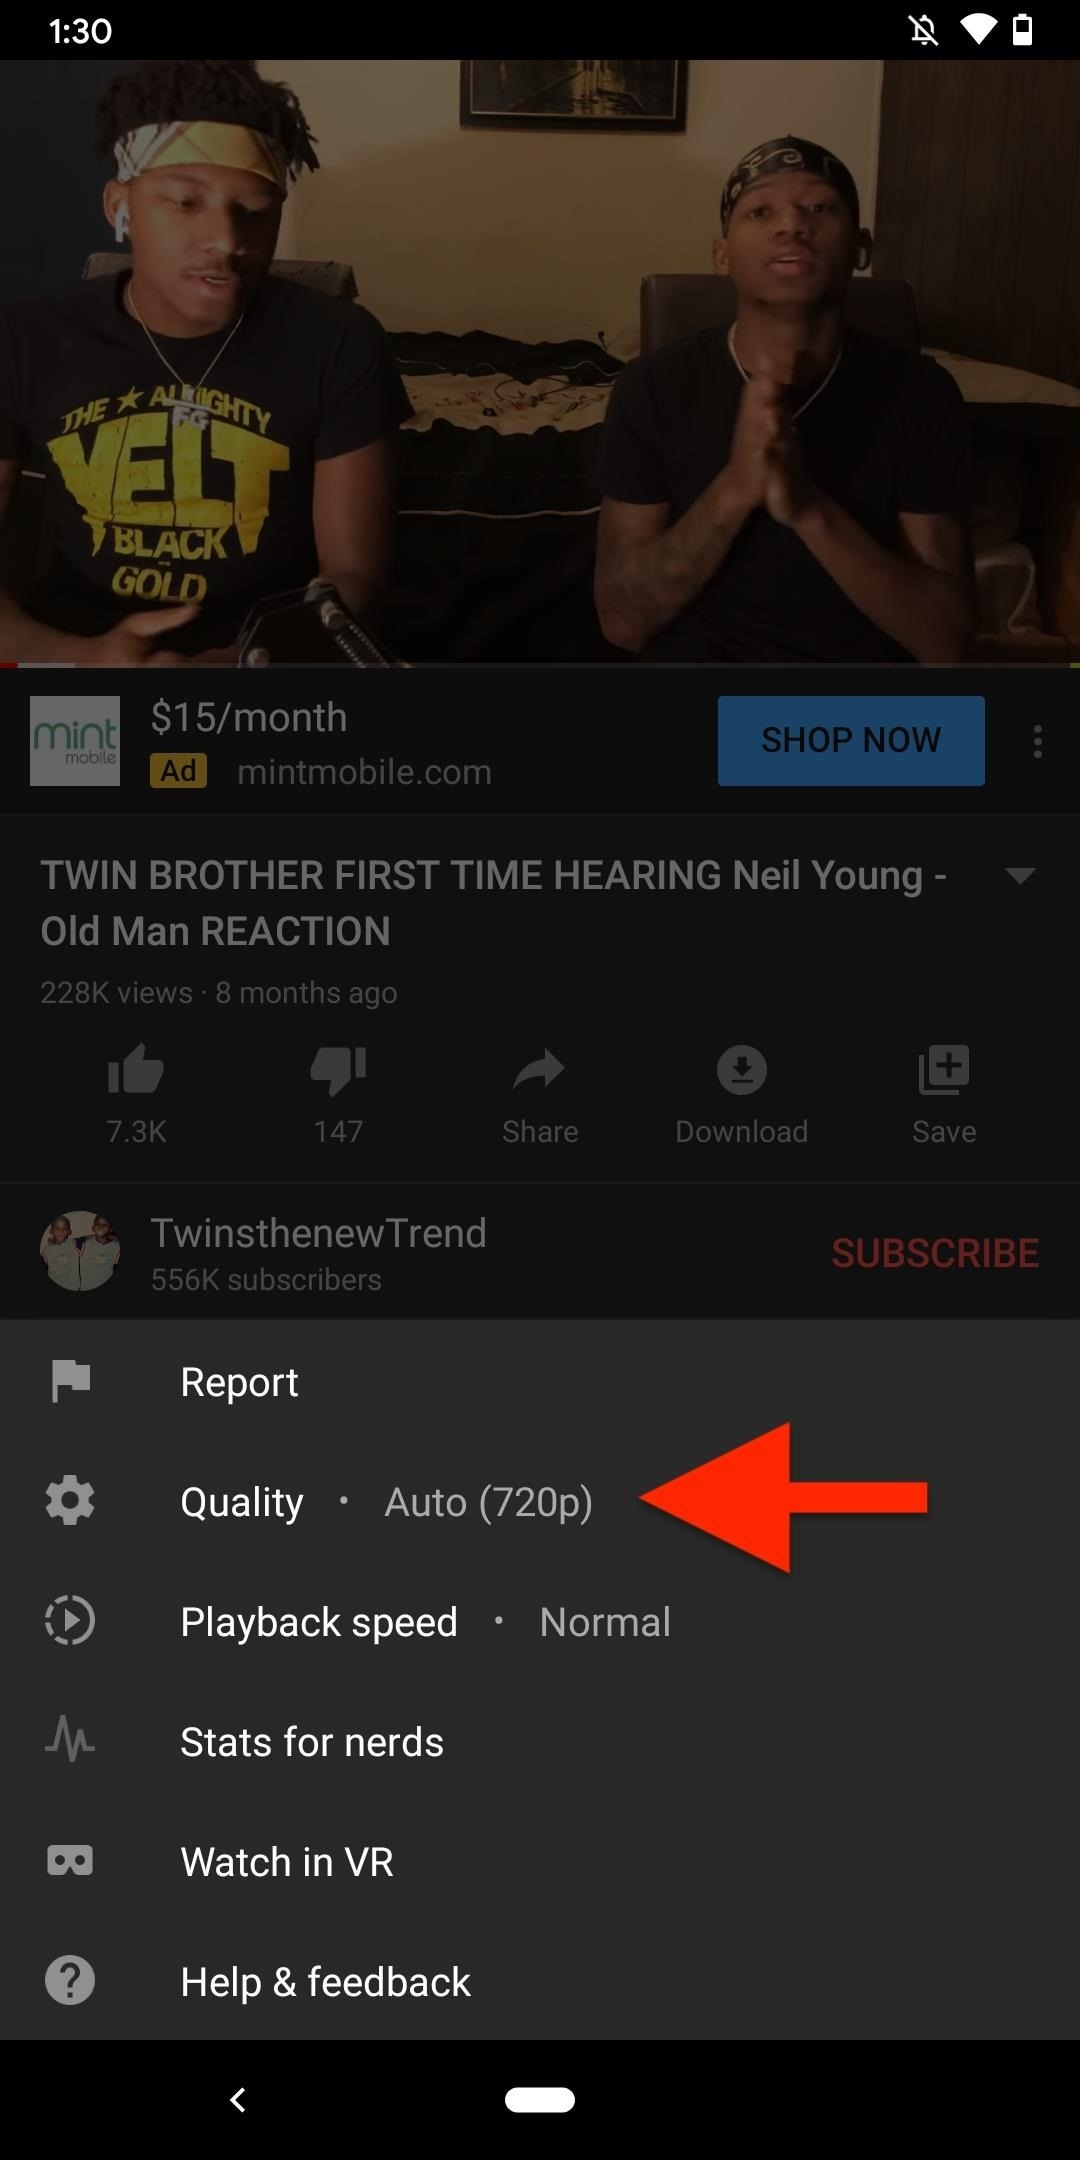 How to Make Sure Videos Are Playing at the Highest Resolution Possible on YouTube, YouTube Music & YouTube TV